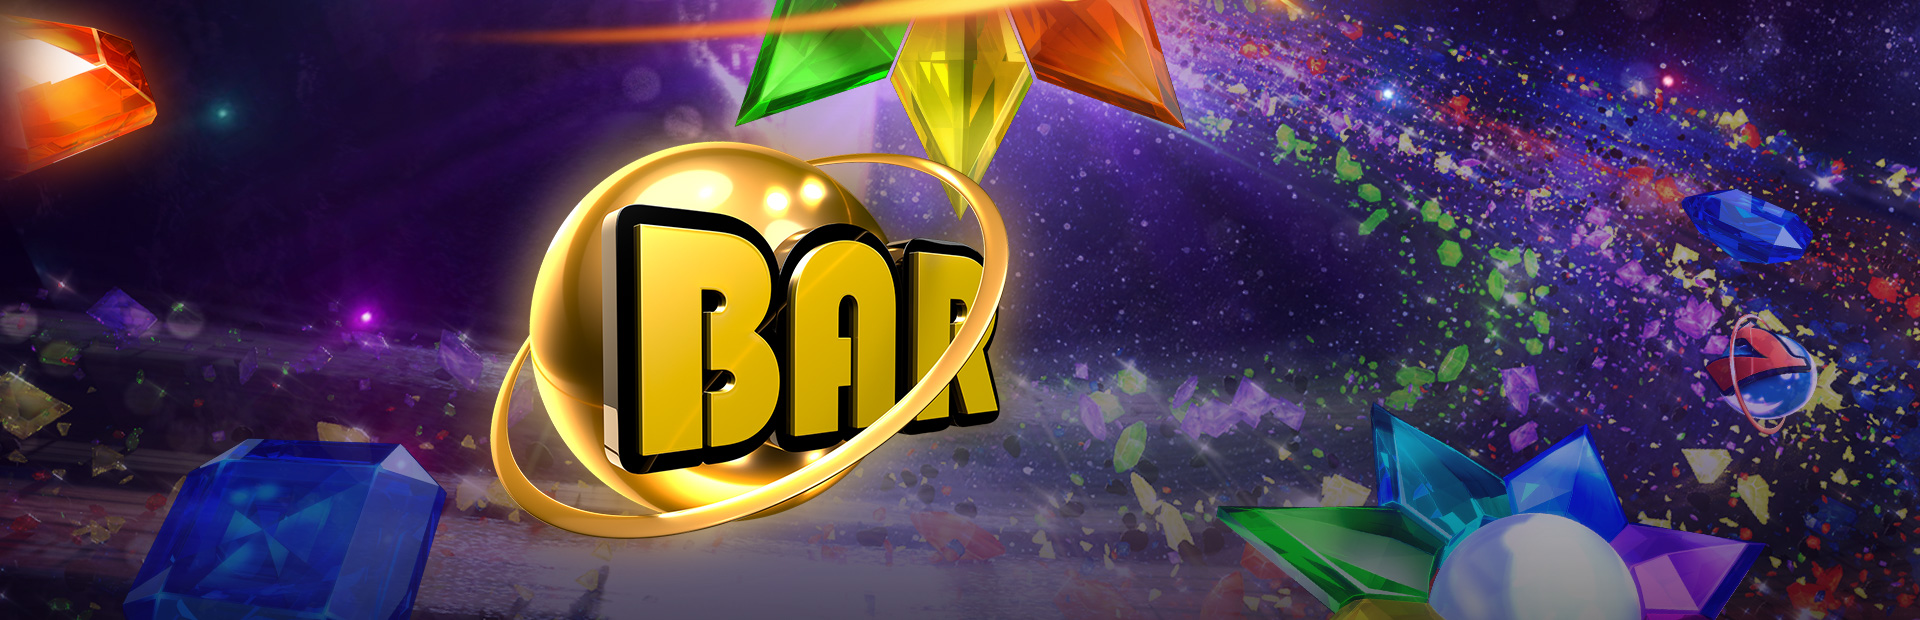 starburst best slot game banner